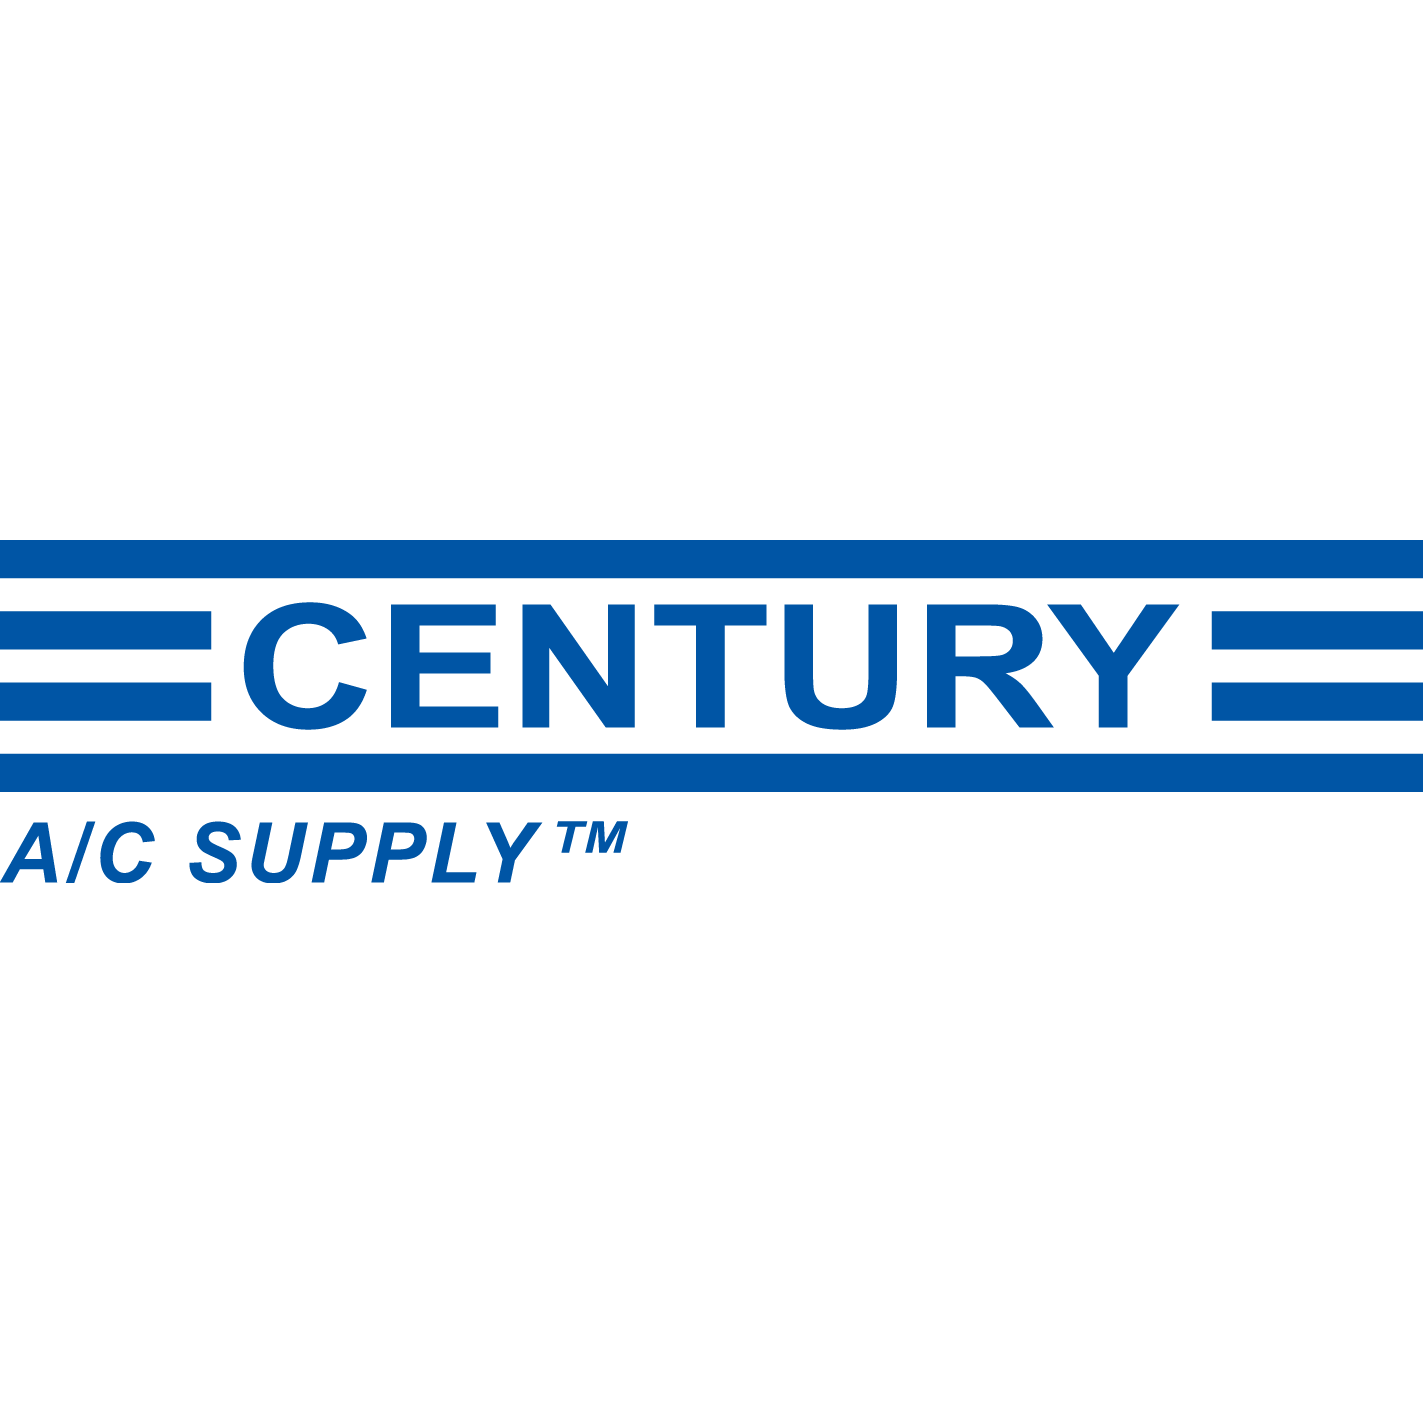 Century A/C Supply - San Antonio, TX - Heating & Air Conditioning